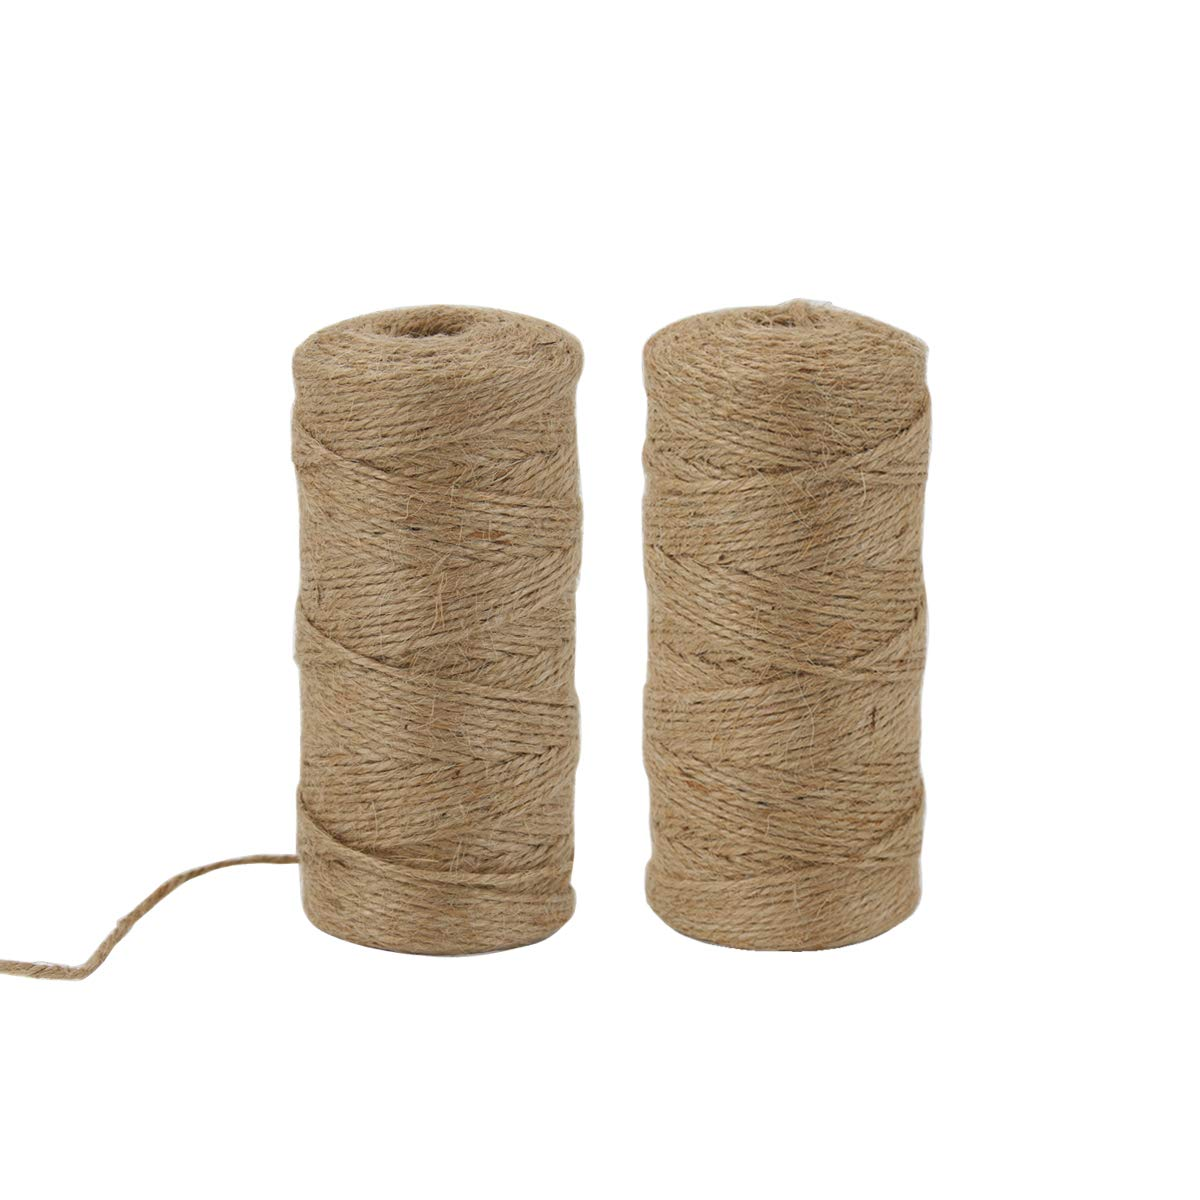 IBRAVEBOX Jute Twine String 2mm 328 Feet/2 Rolls 3 Ply Brown Durable Twine Perfect for Tags Tie, Homemade Art, DIY Crafts